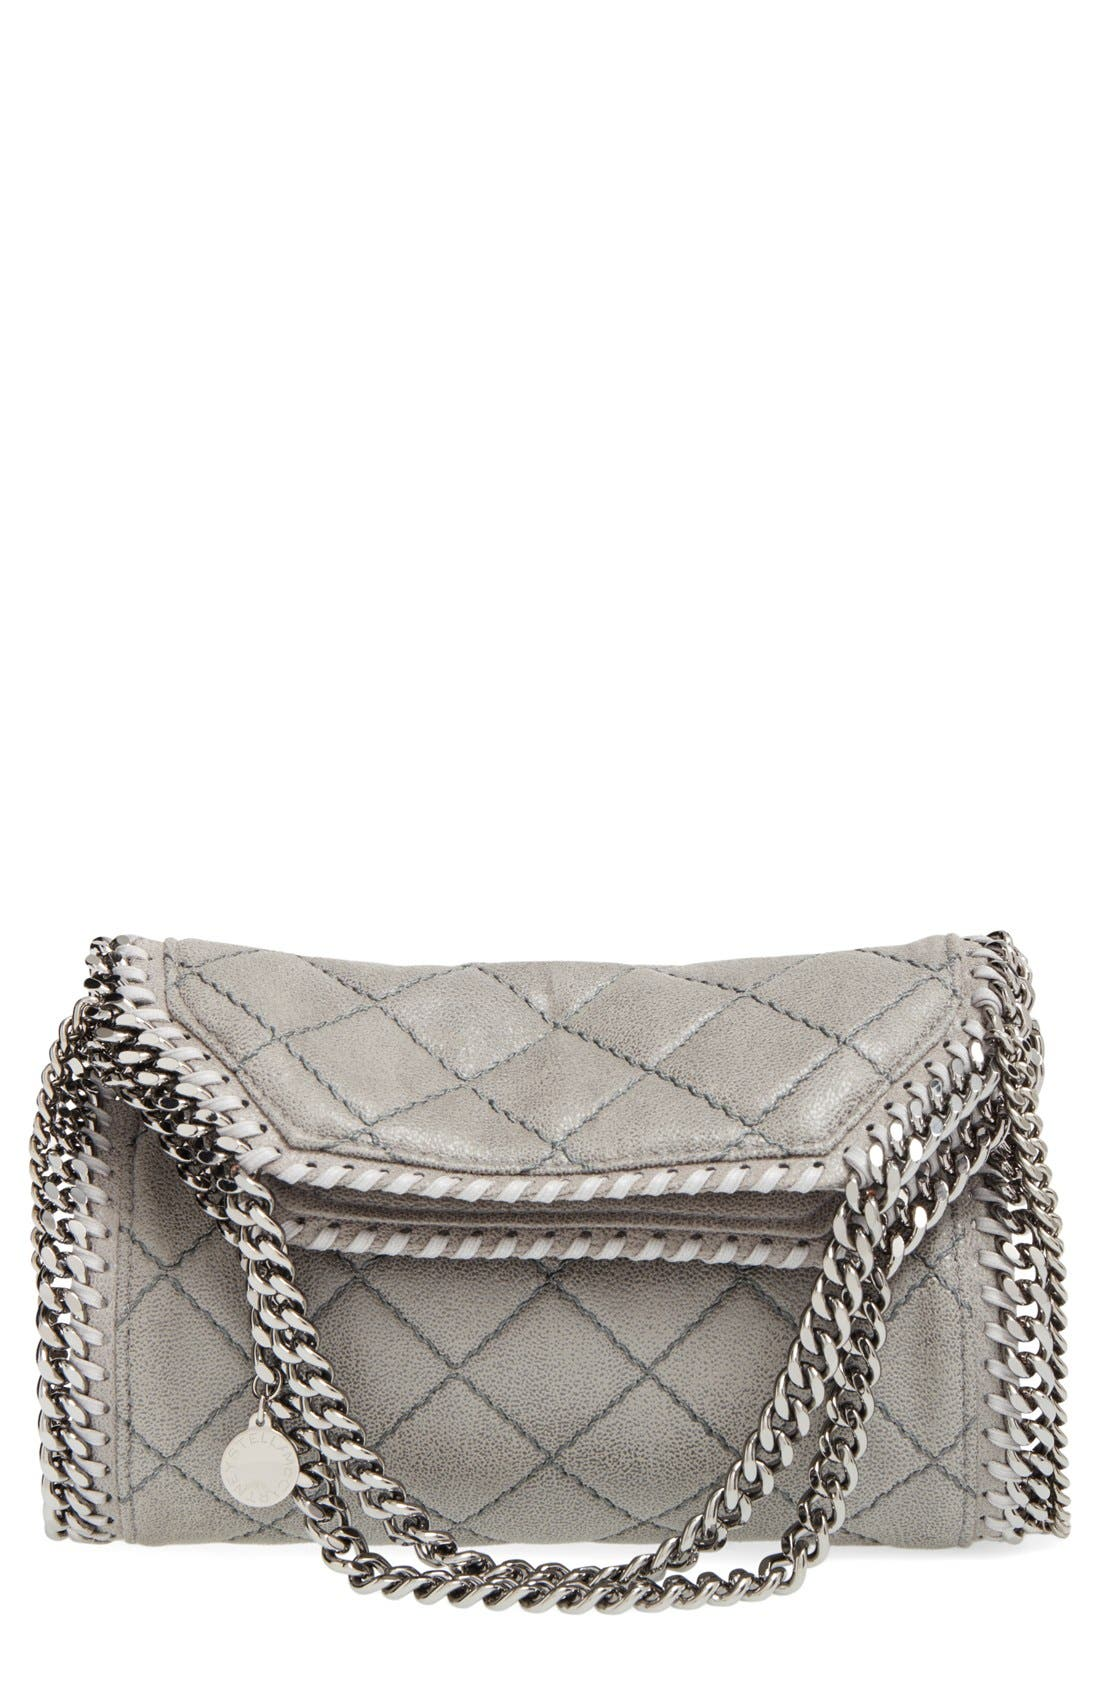 Stella McCartney 'Mini Falabella' Quilted Faux Leather Tote